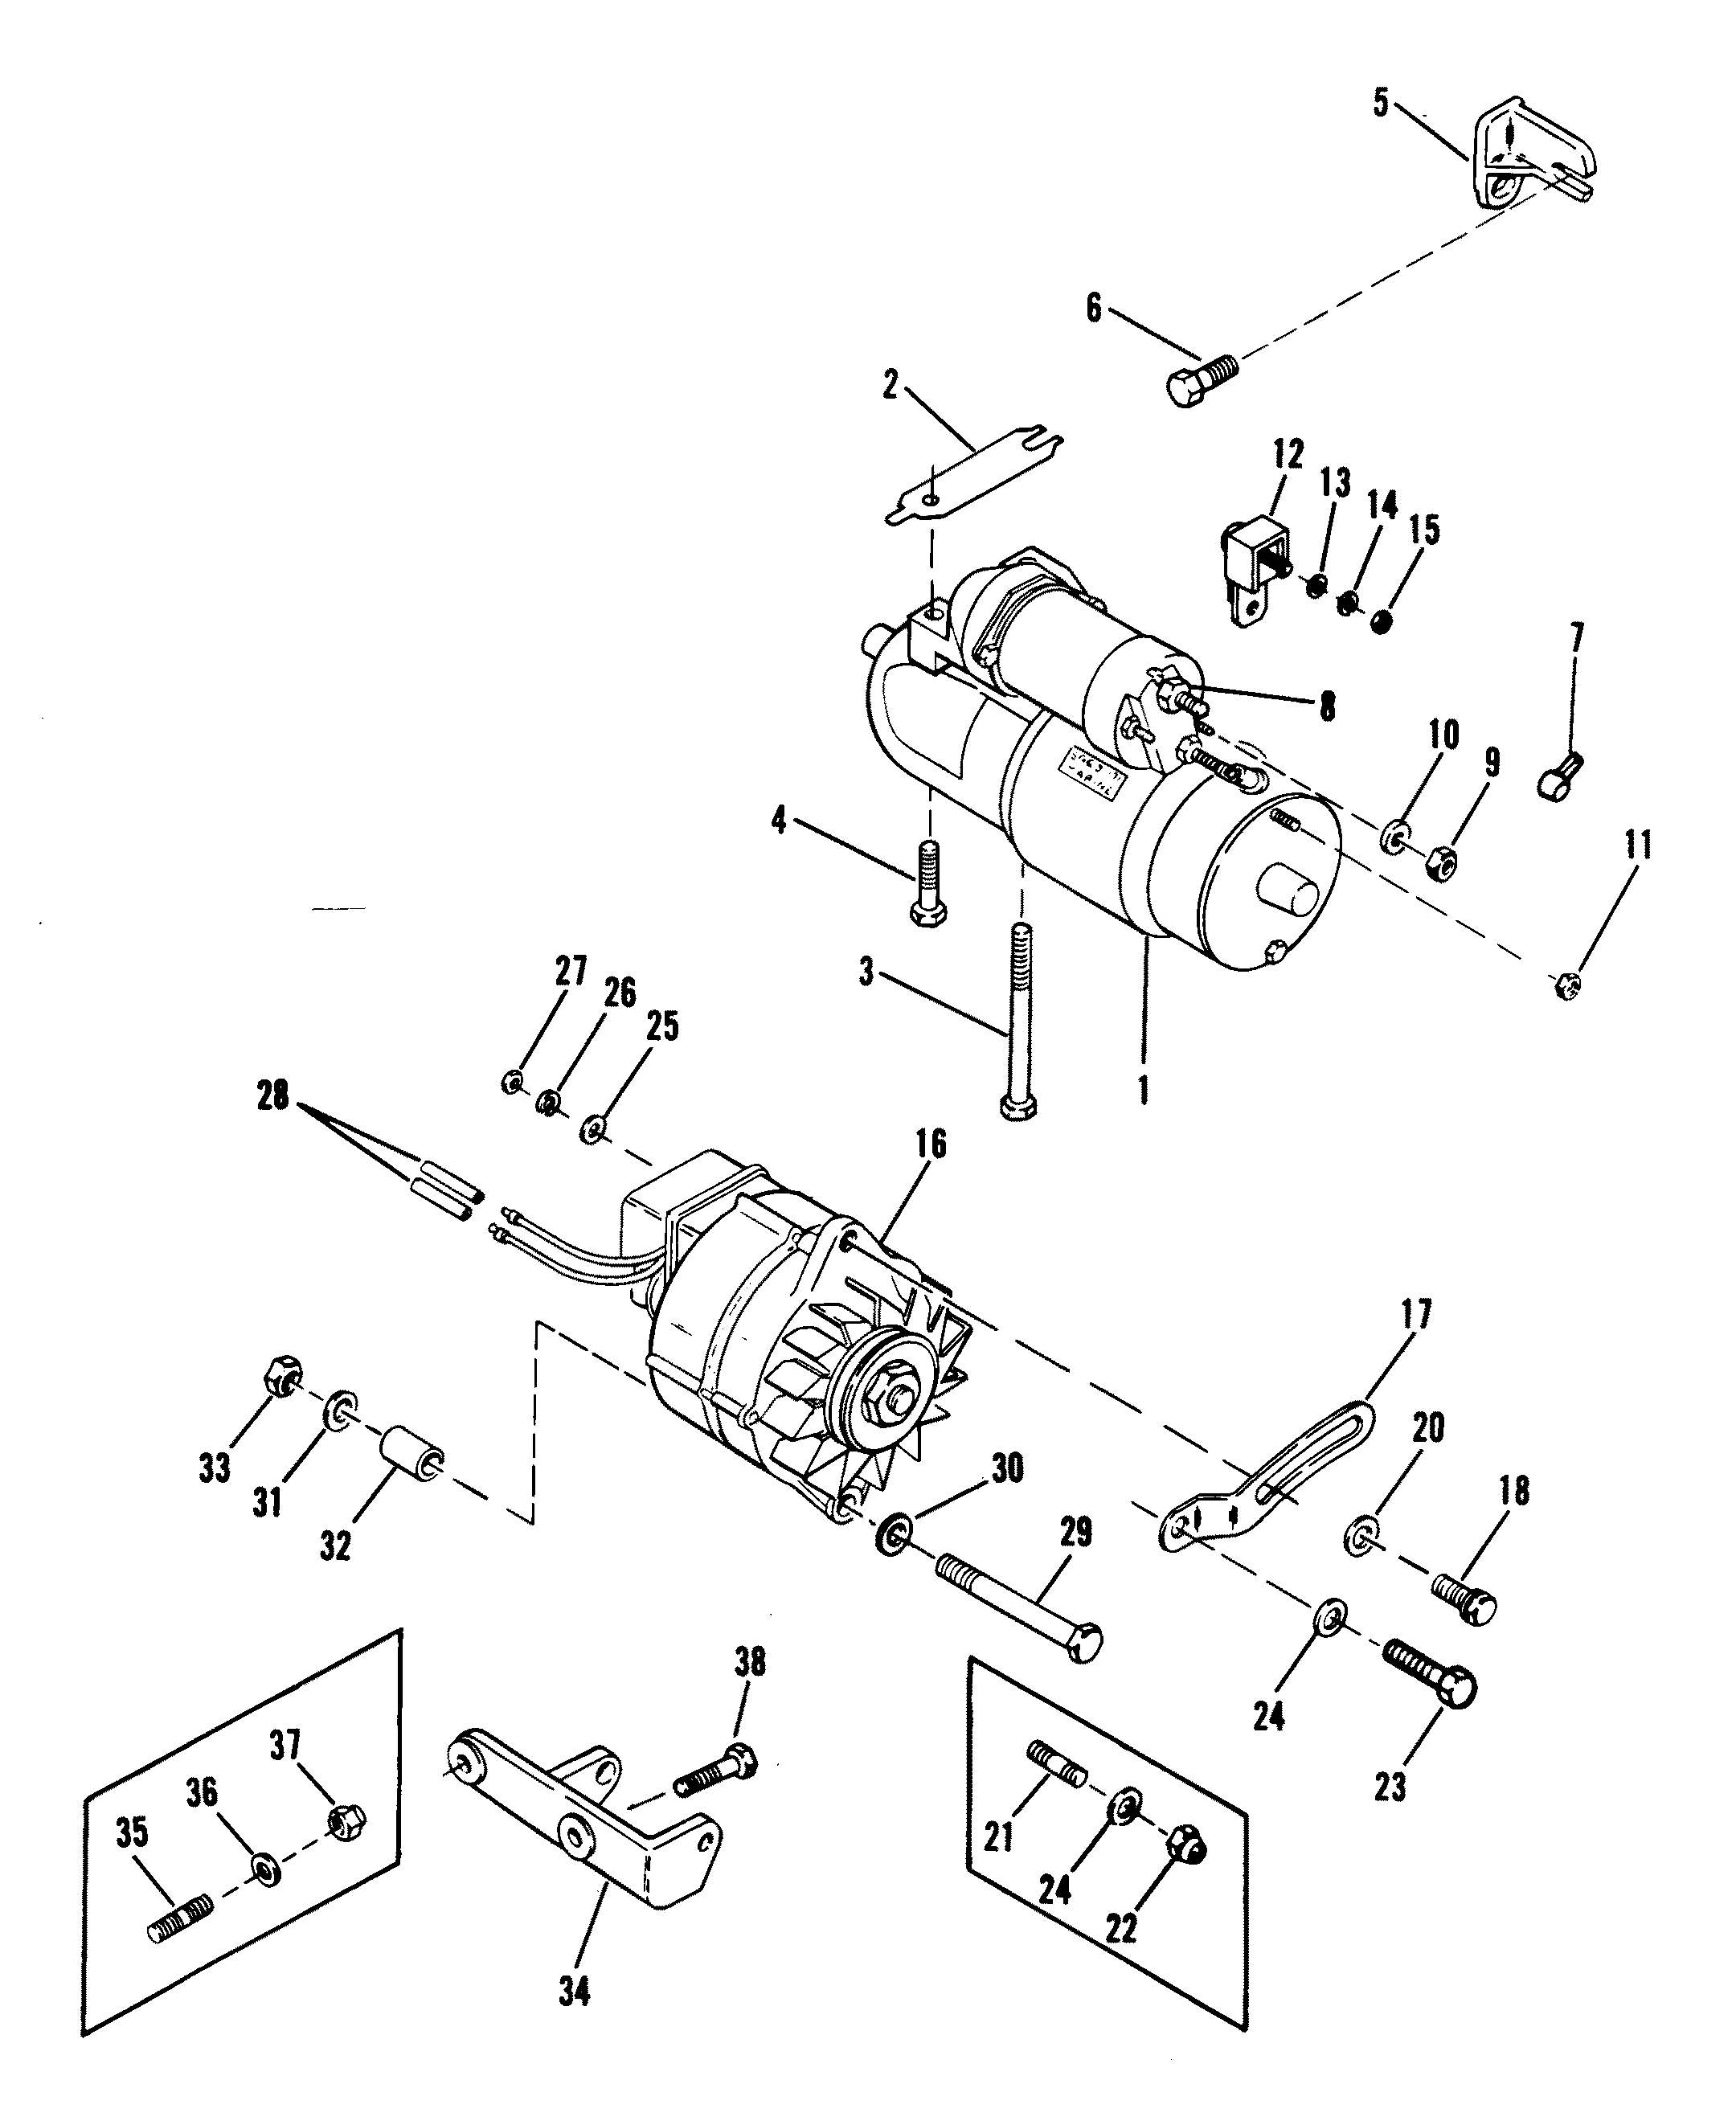 Starter Motor And Alternator For Mercruiser 120 H P 2